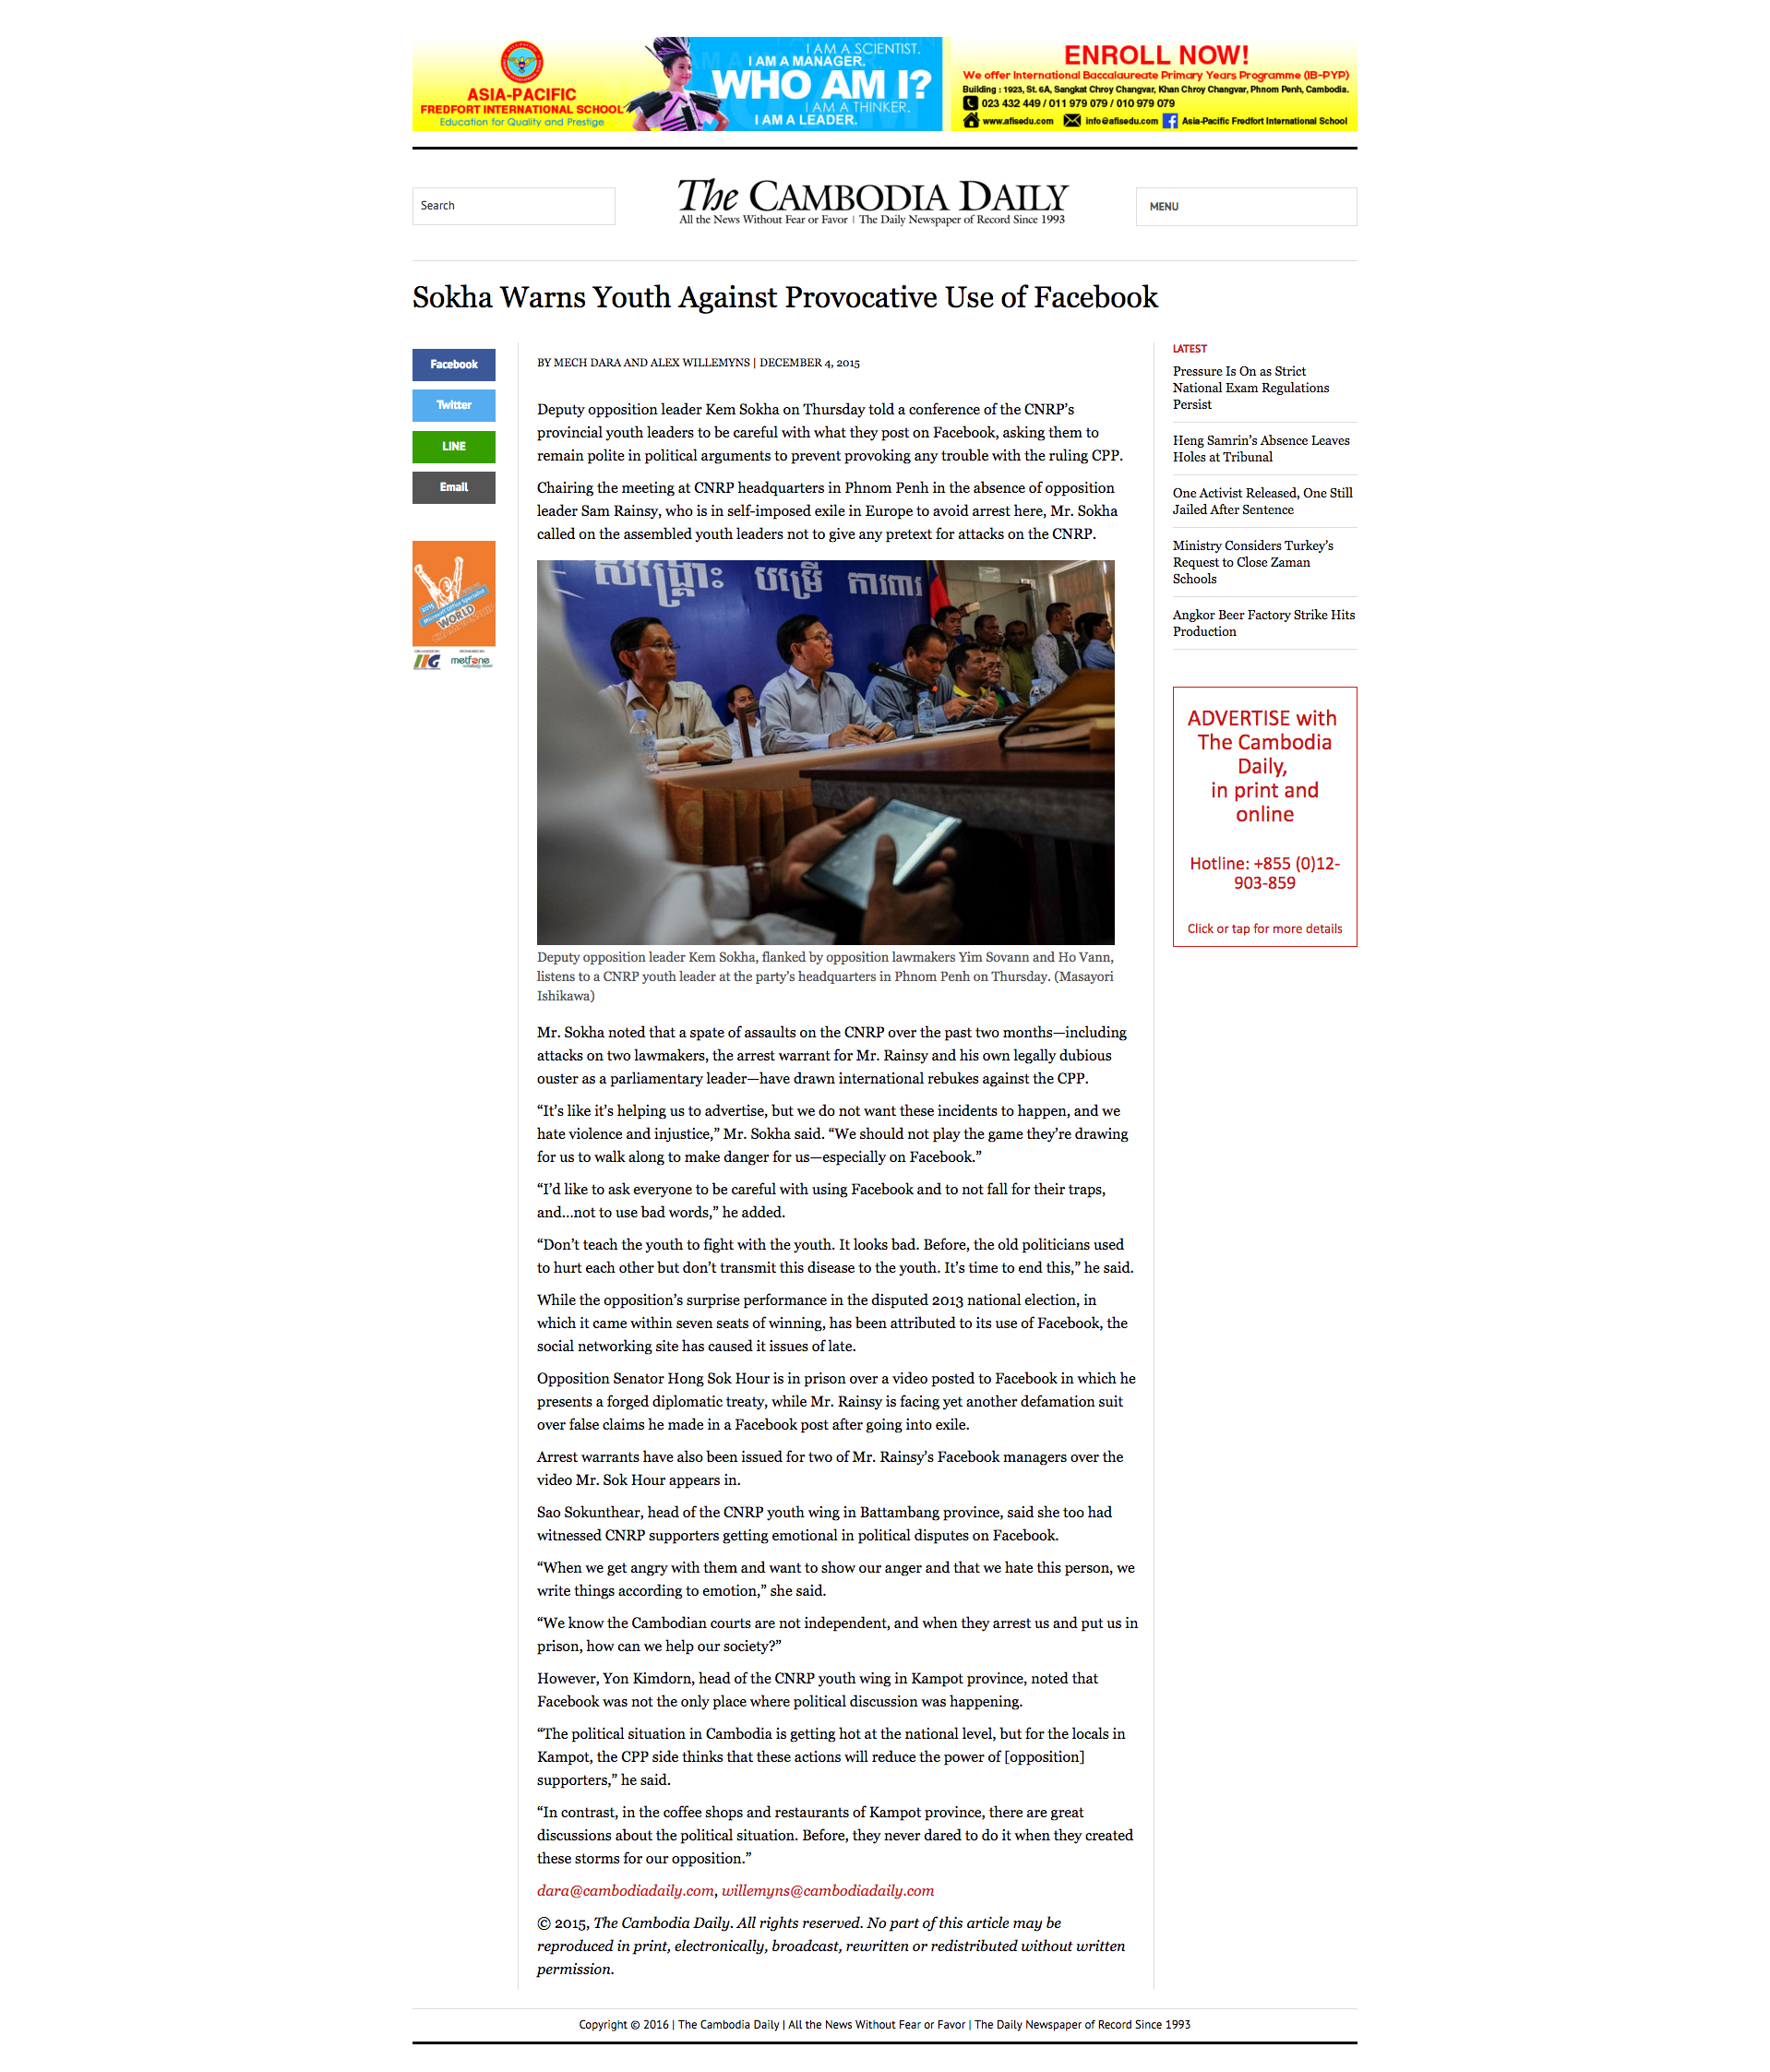 screencapture-cambodiadaily-news-sokha-warns-youth-against-provocative-use-of-facebook-102004-147197